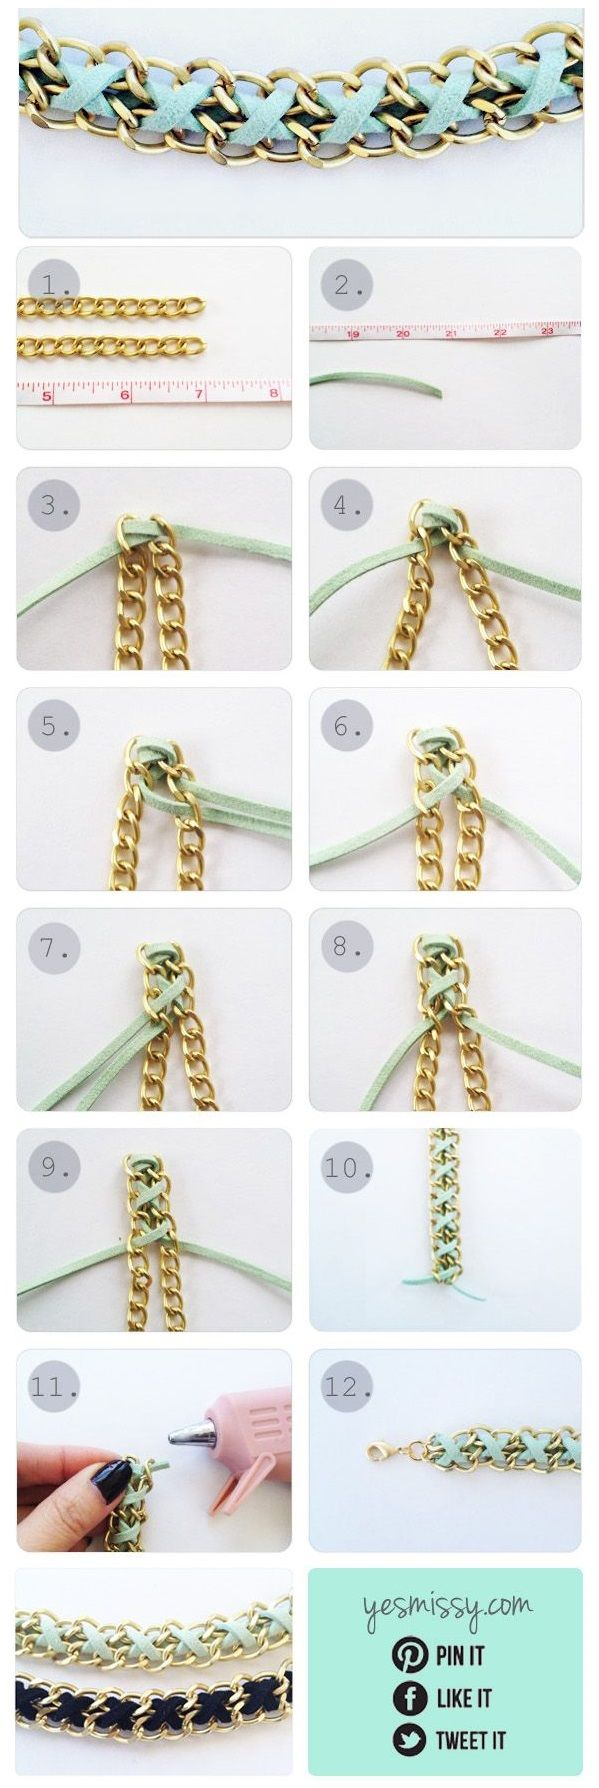 Chain bracelets are loved and adored by a lot of girls nowadays, but mostly they are all the same and this creates a desire in girls to look different. We